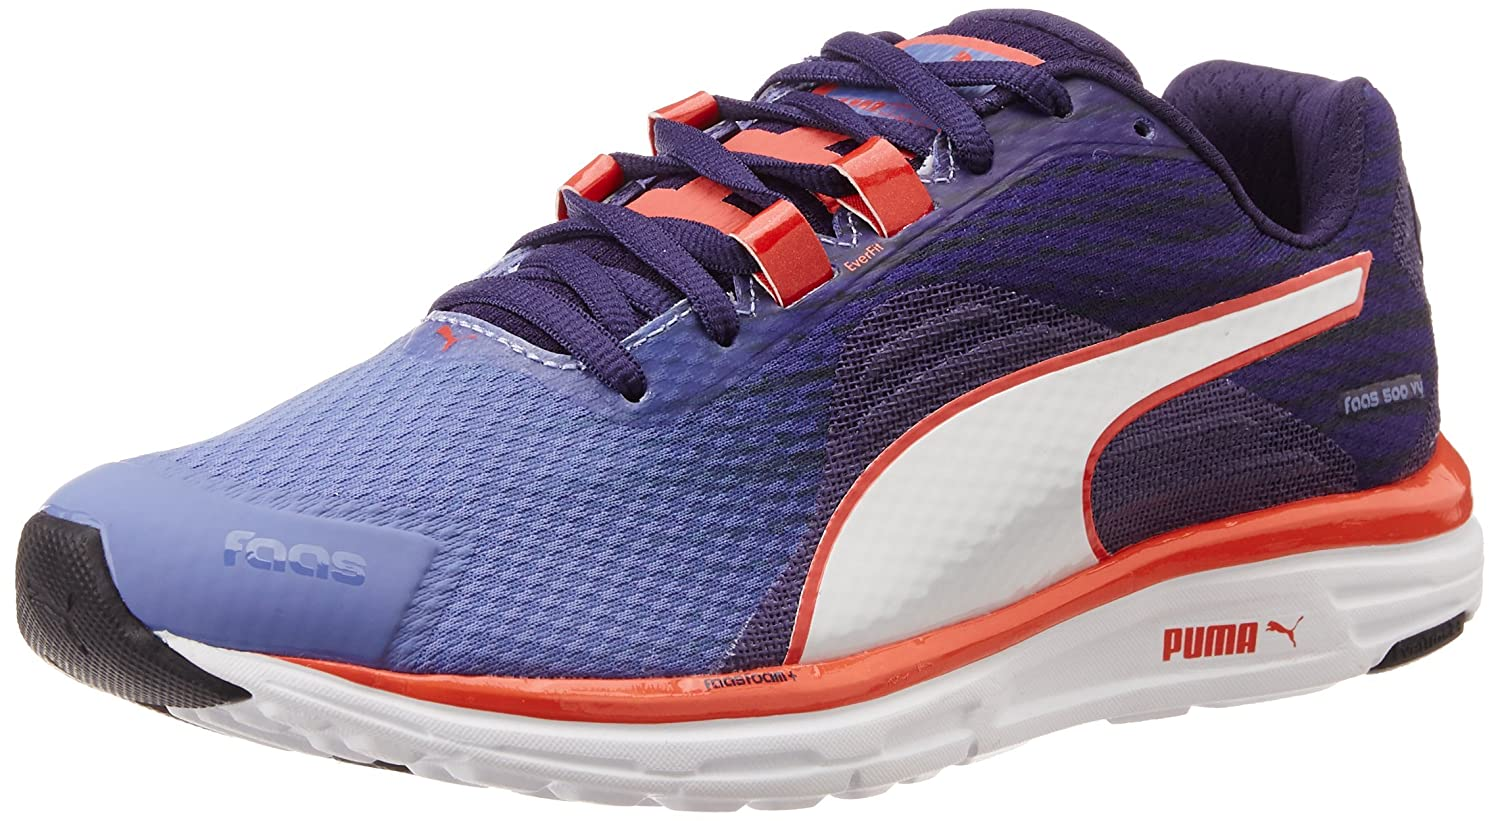 | PUMA FAAS 500v4 Women's Running Shoes | Road